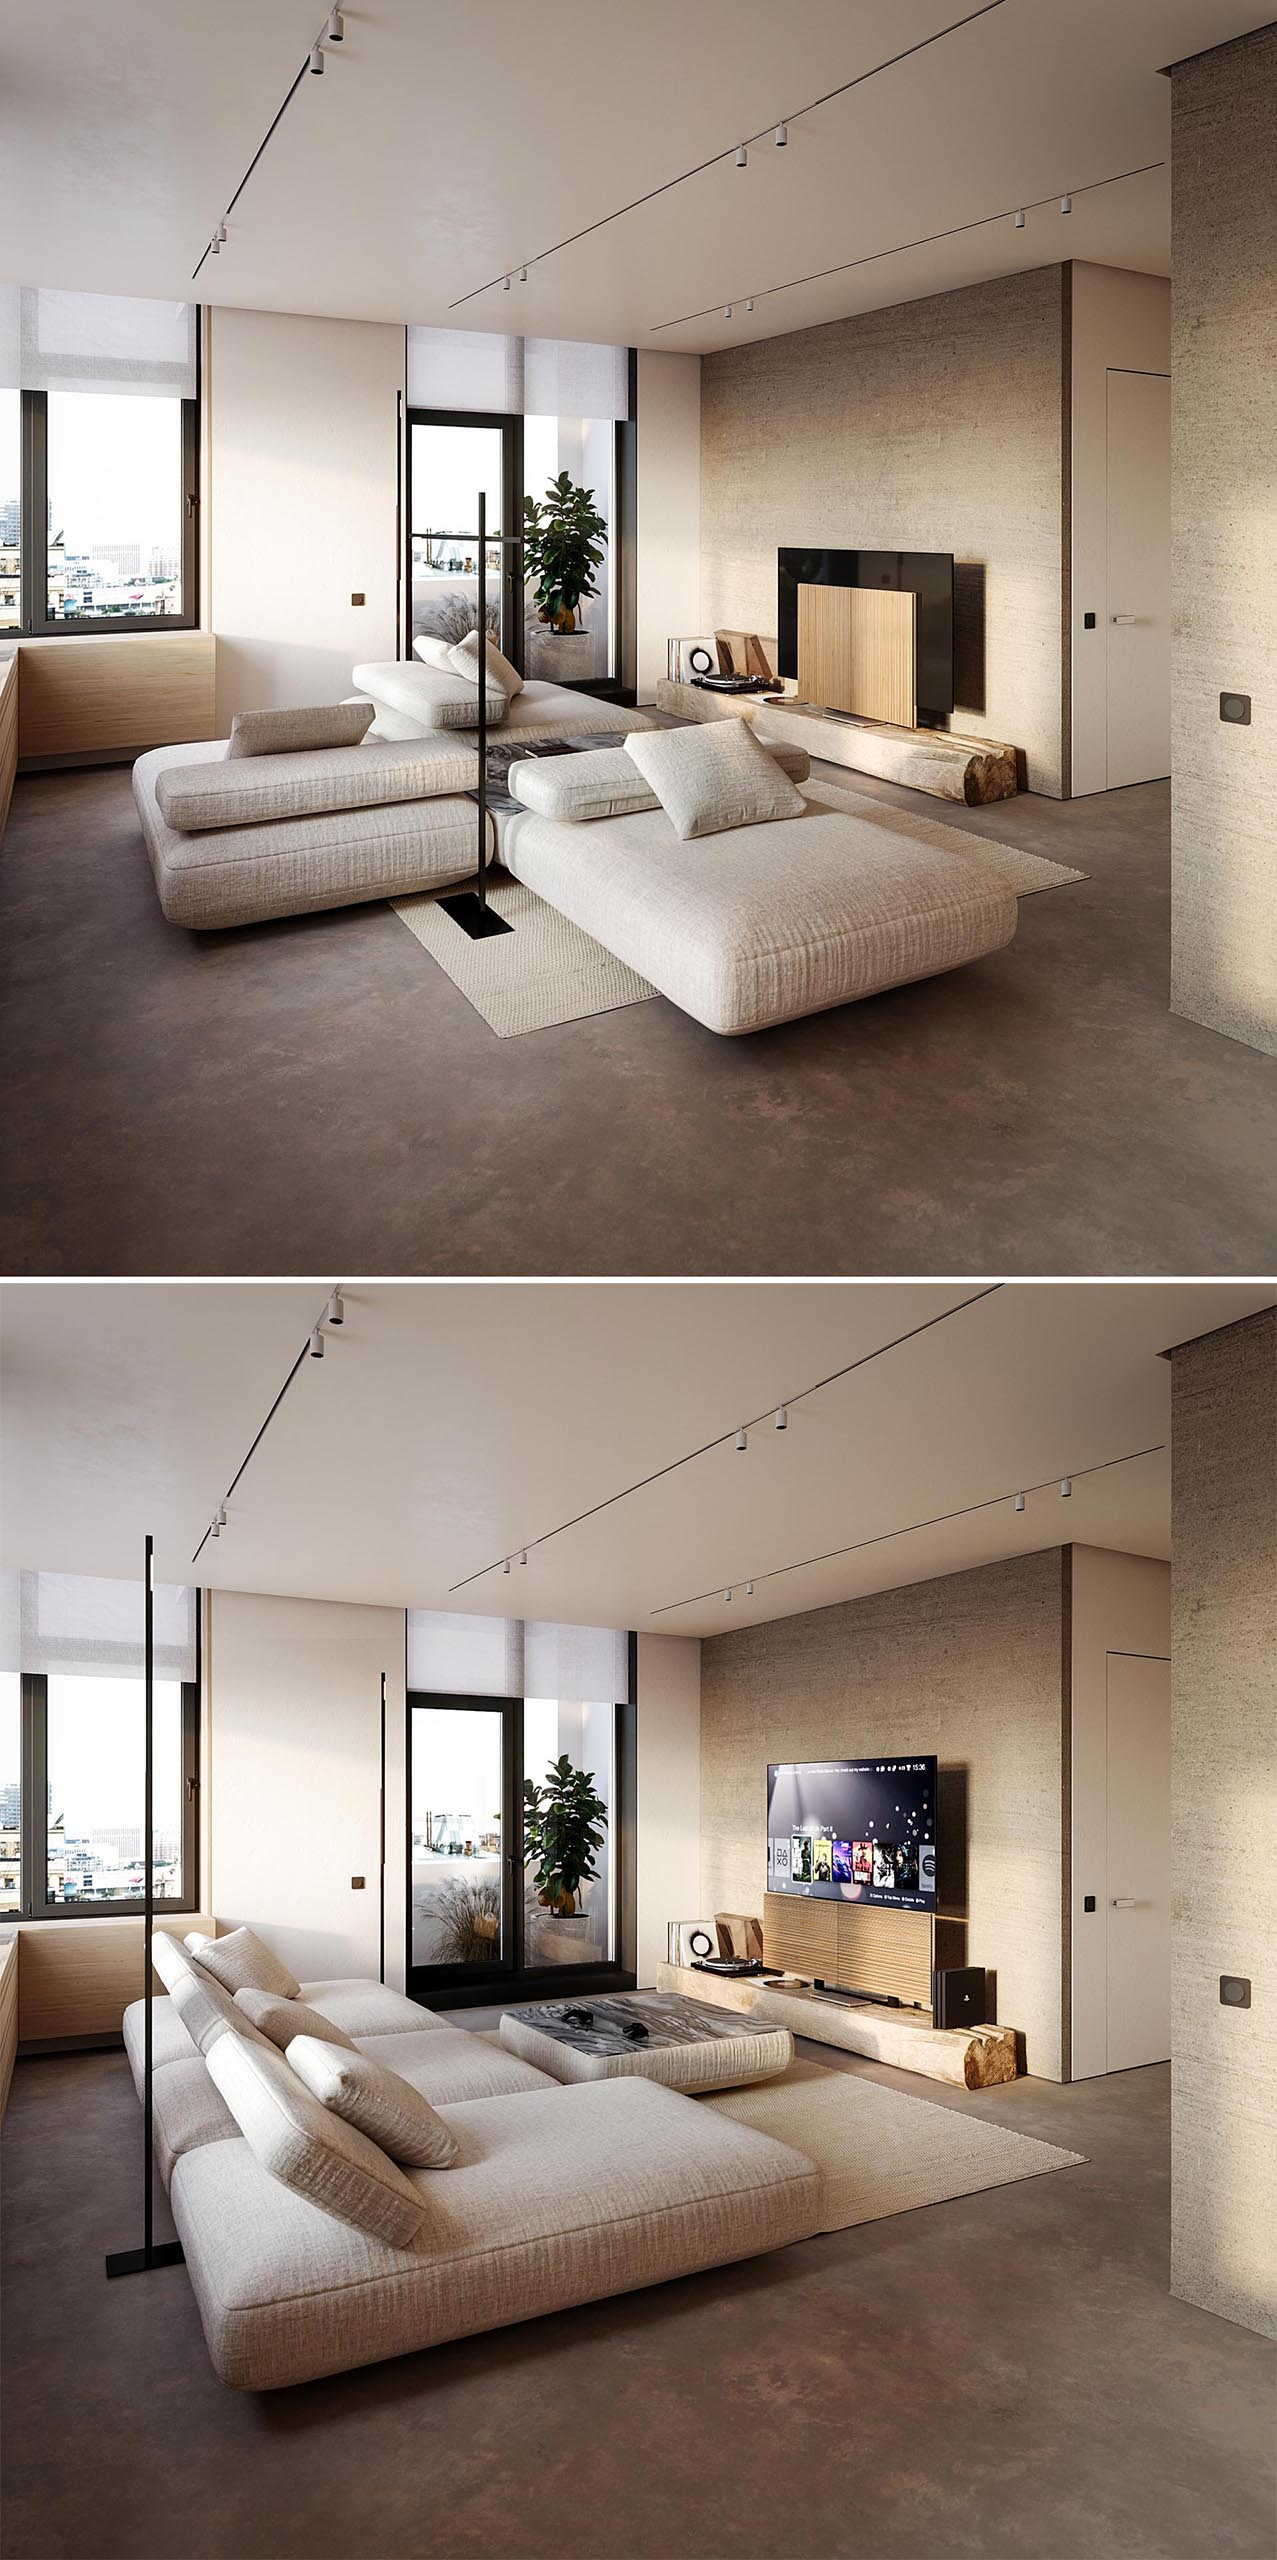 A modern living room with neutral color palette and a modular sofa.